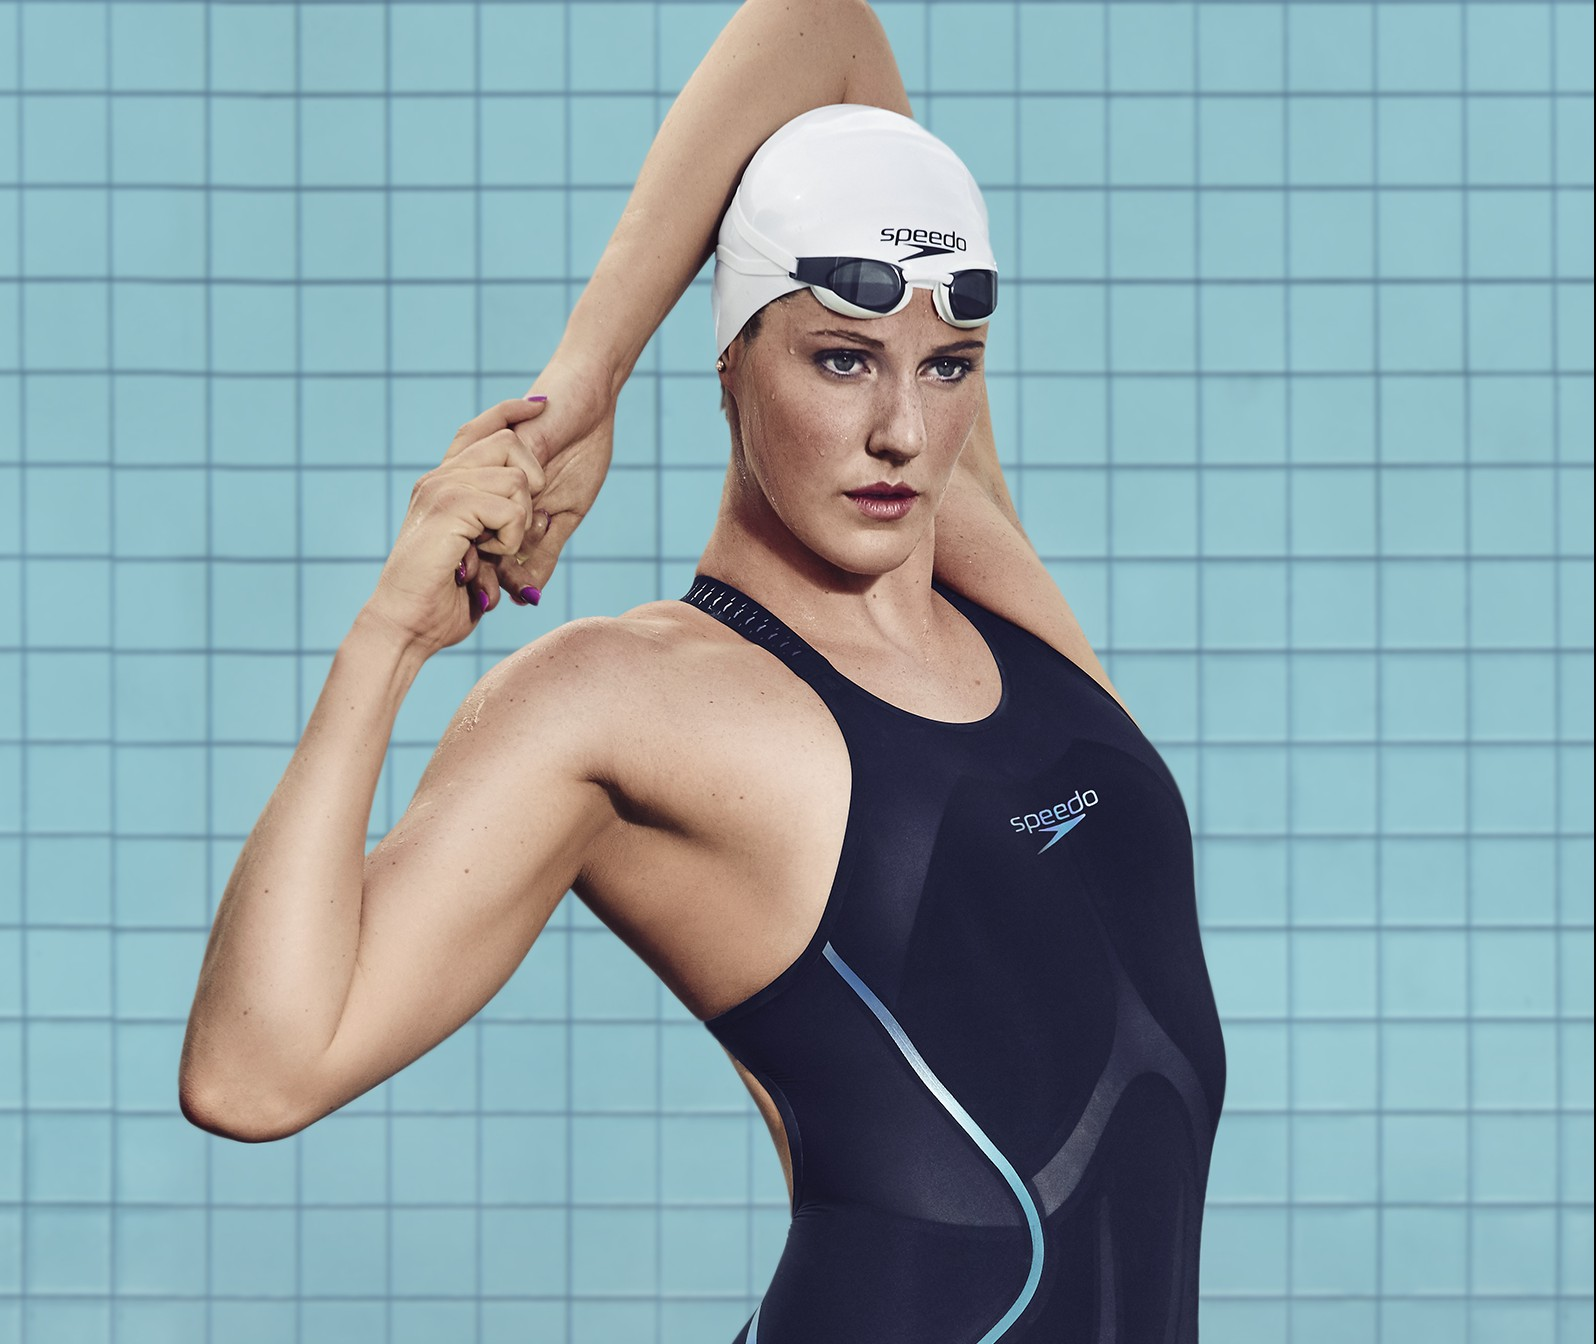 Missy Franklin Signs Endorsement Deal With Speedo